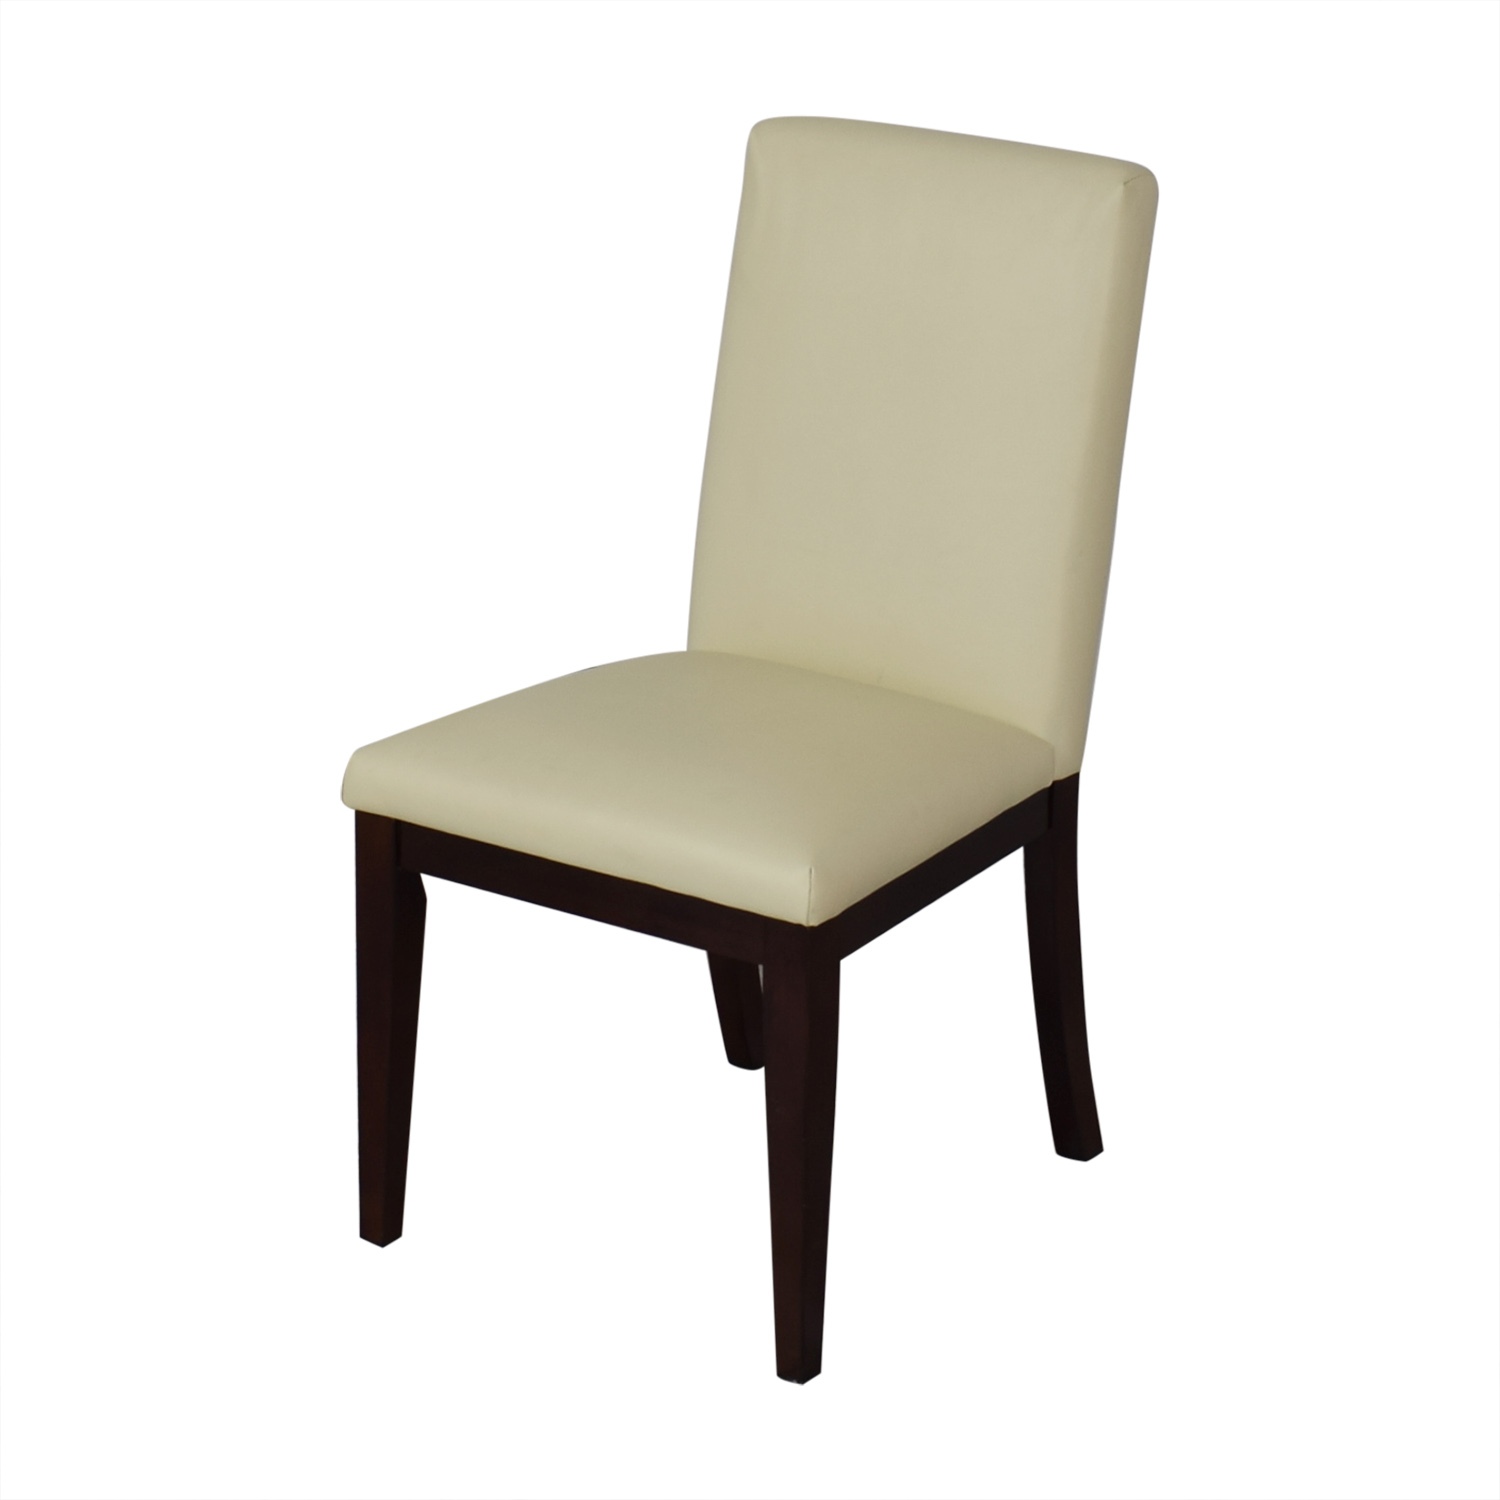 Macy's Macy's Dining Chairs second hand